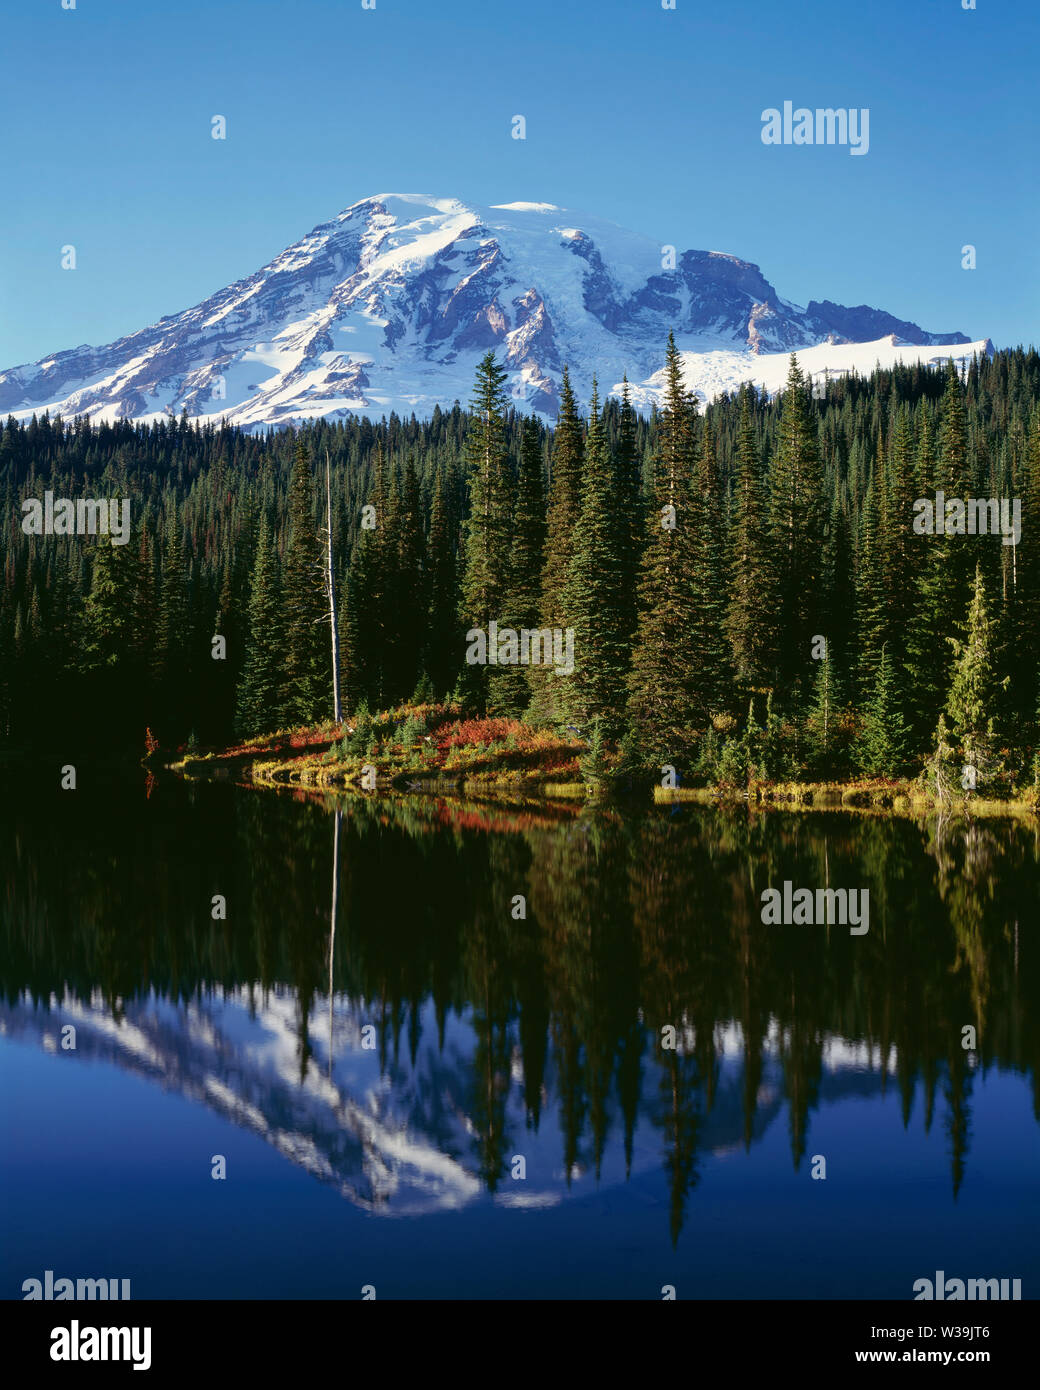 USA, Washington, Mt. Rainier National Park, Mt. Rainier with fresh autumn snow and fall-colored shrubs reflect in Reflection Lake. Stock Photo